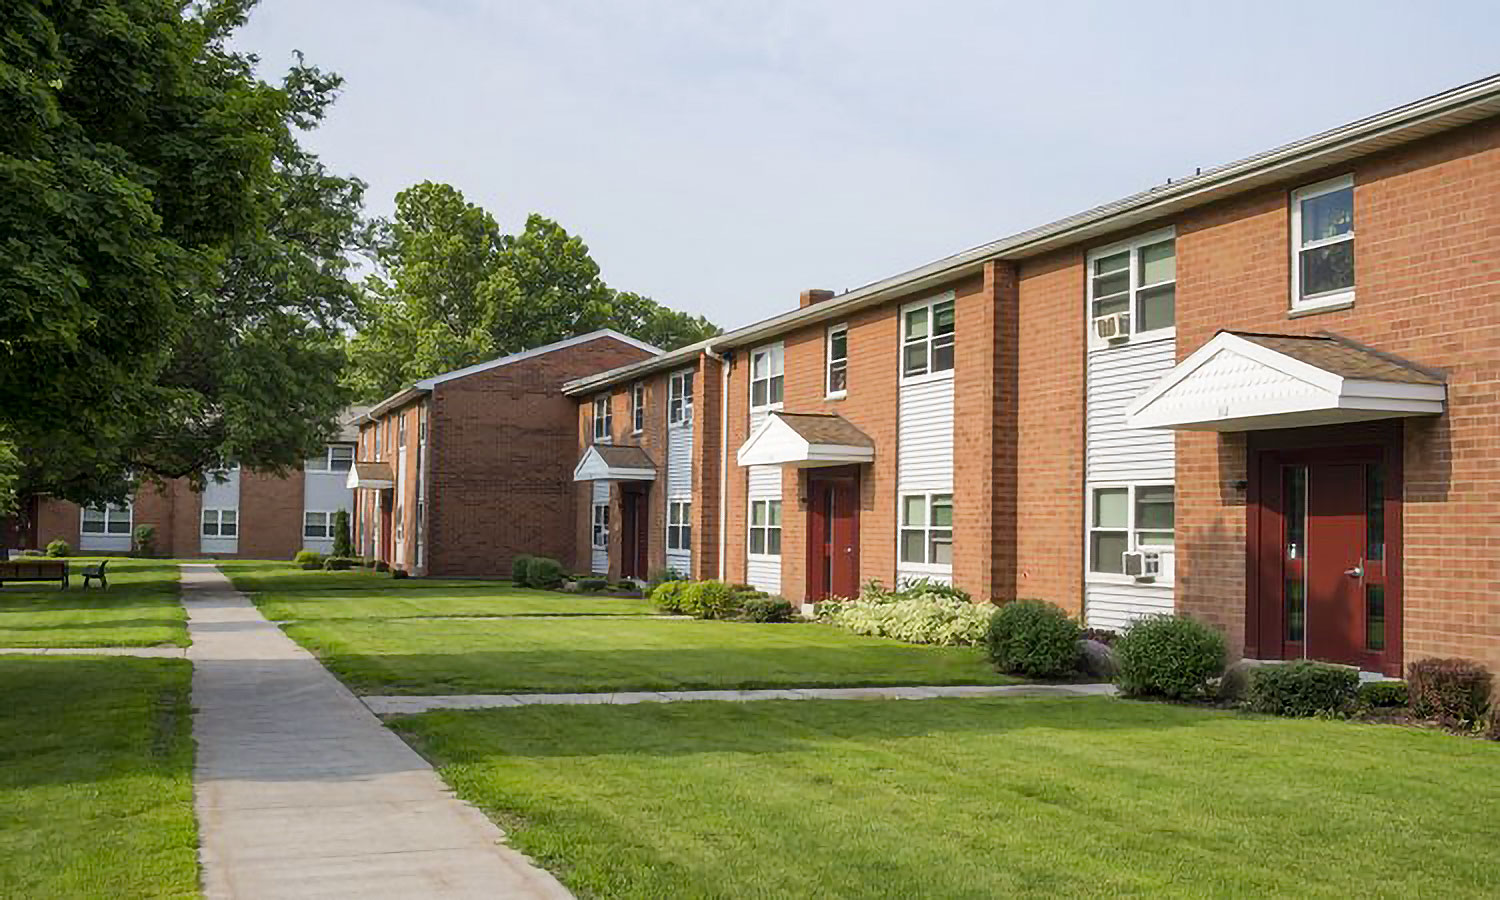 Chatham Gardens Affordable Housing